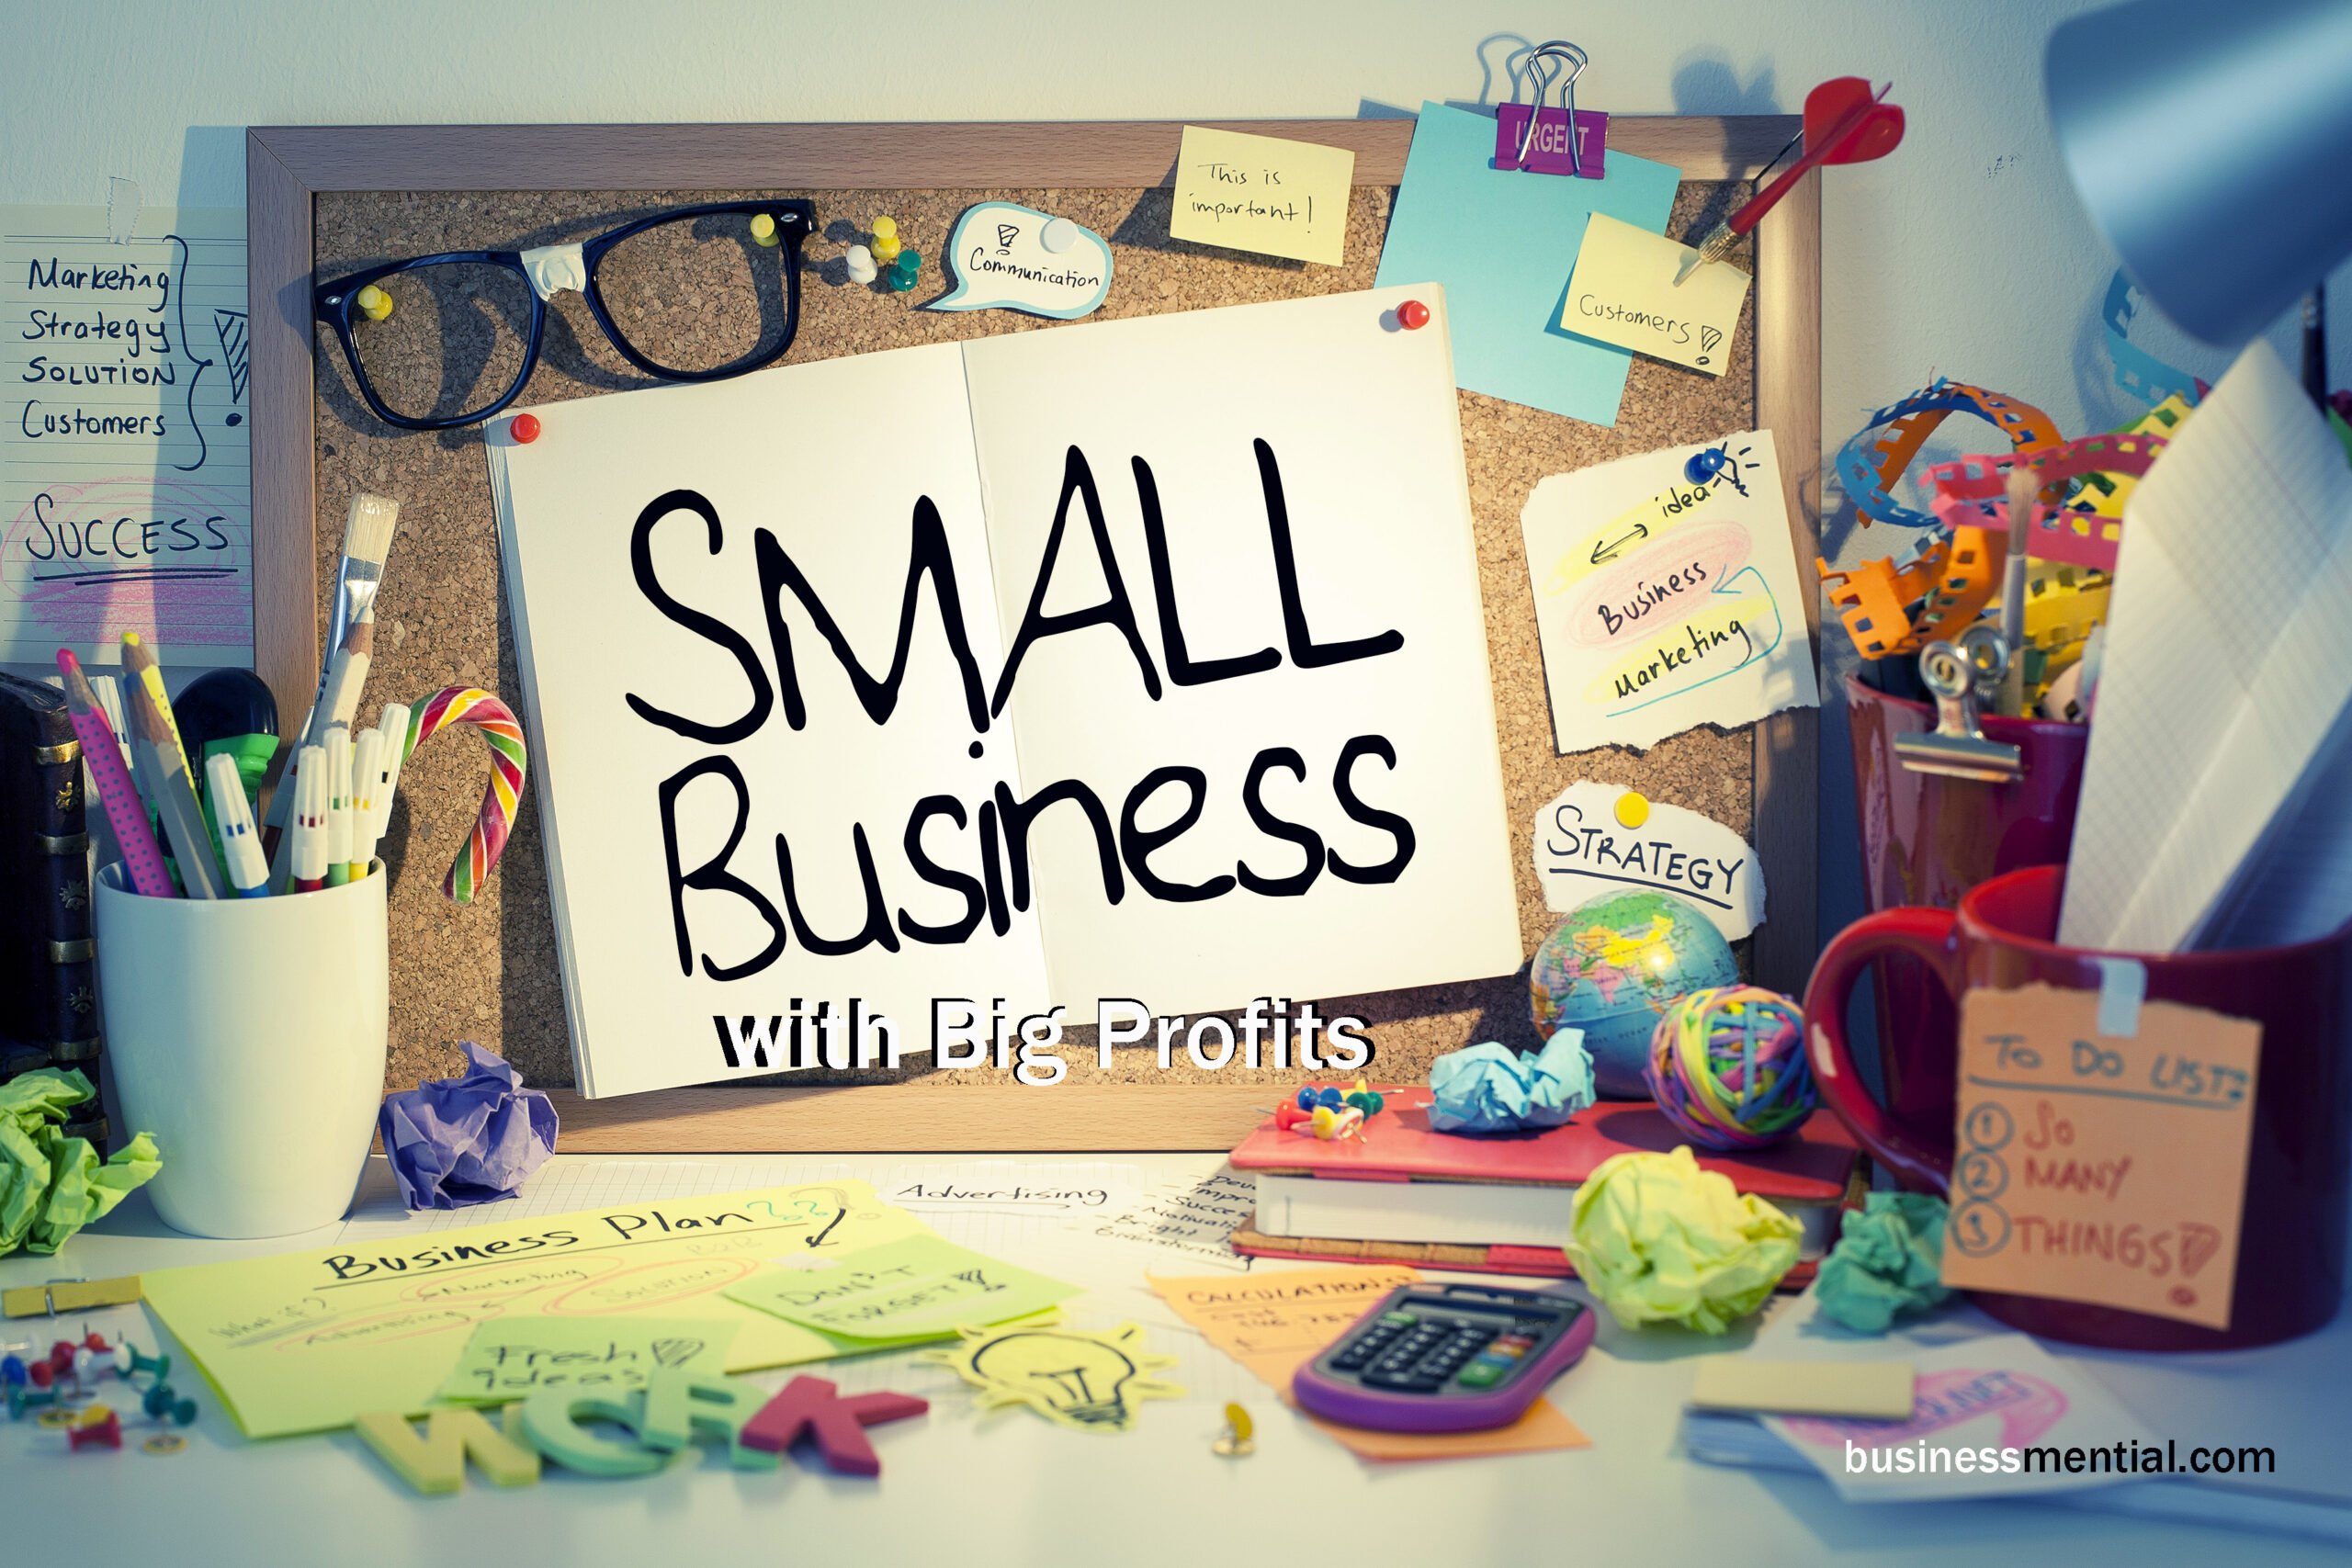 12 Small Business Ideas with Big Profits